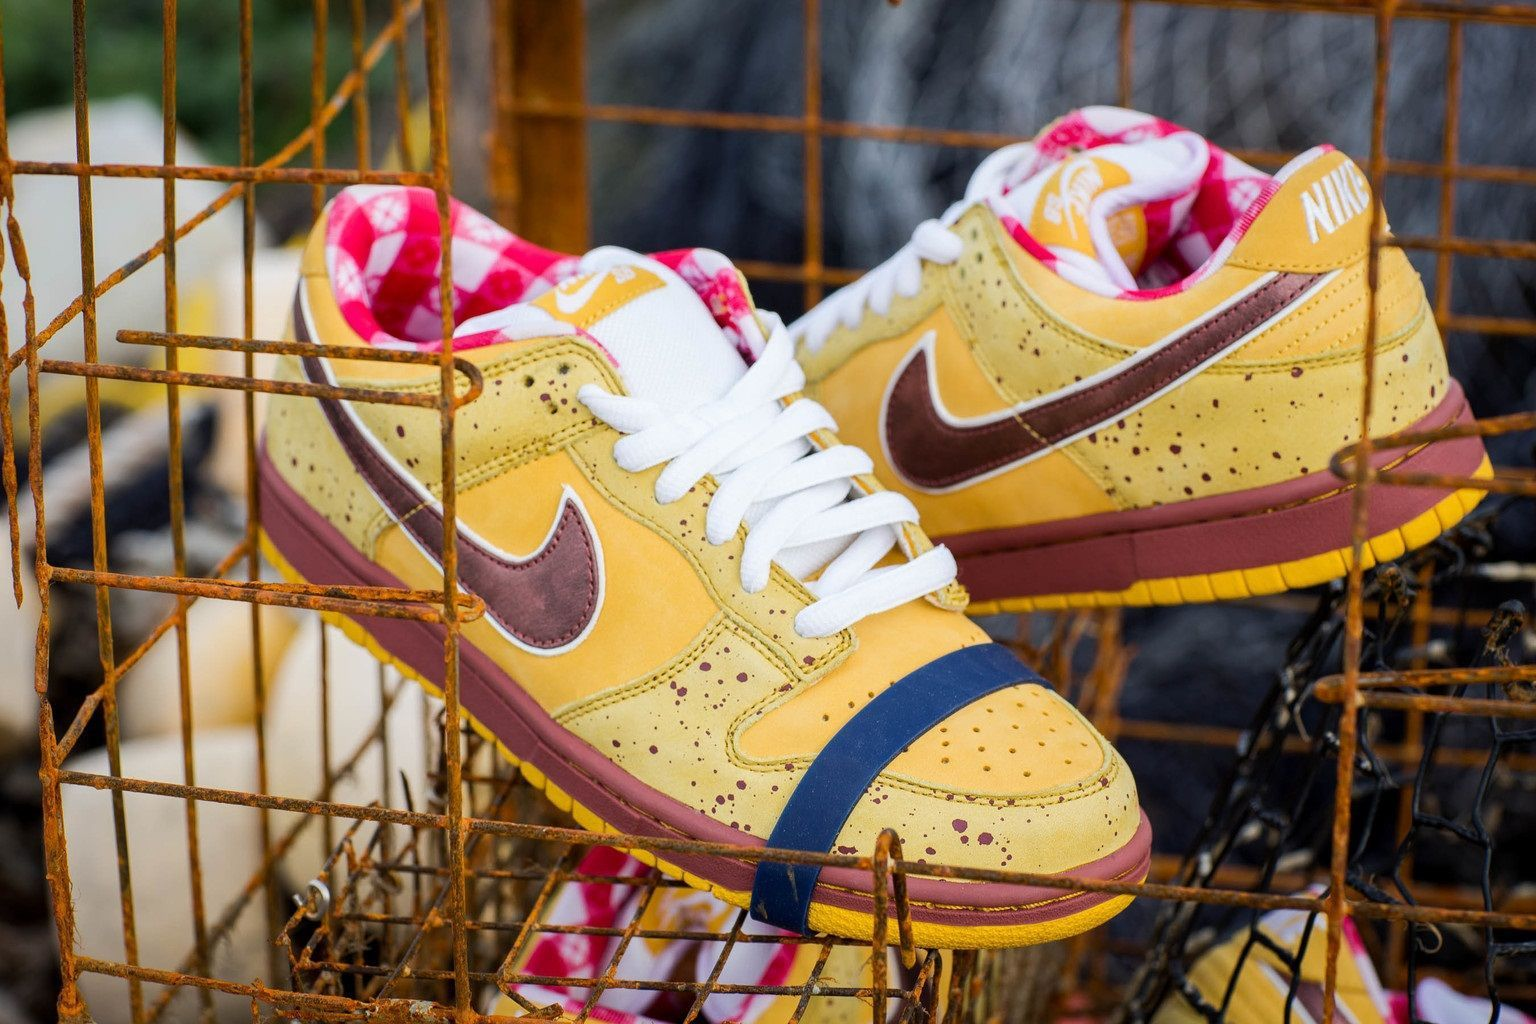 The 10 most expensive Nike Dunk SB on